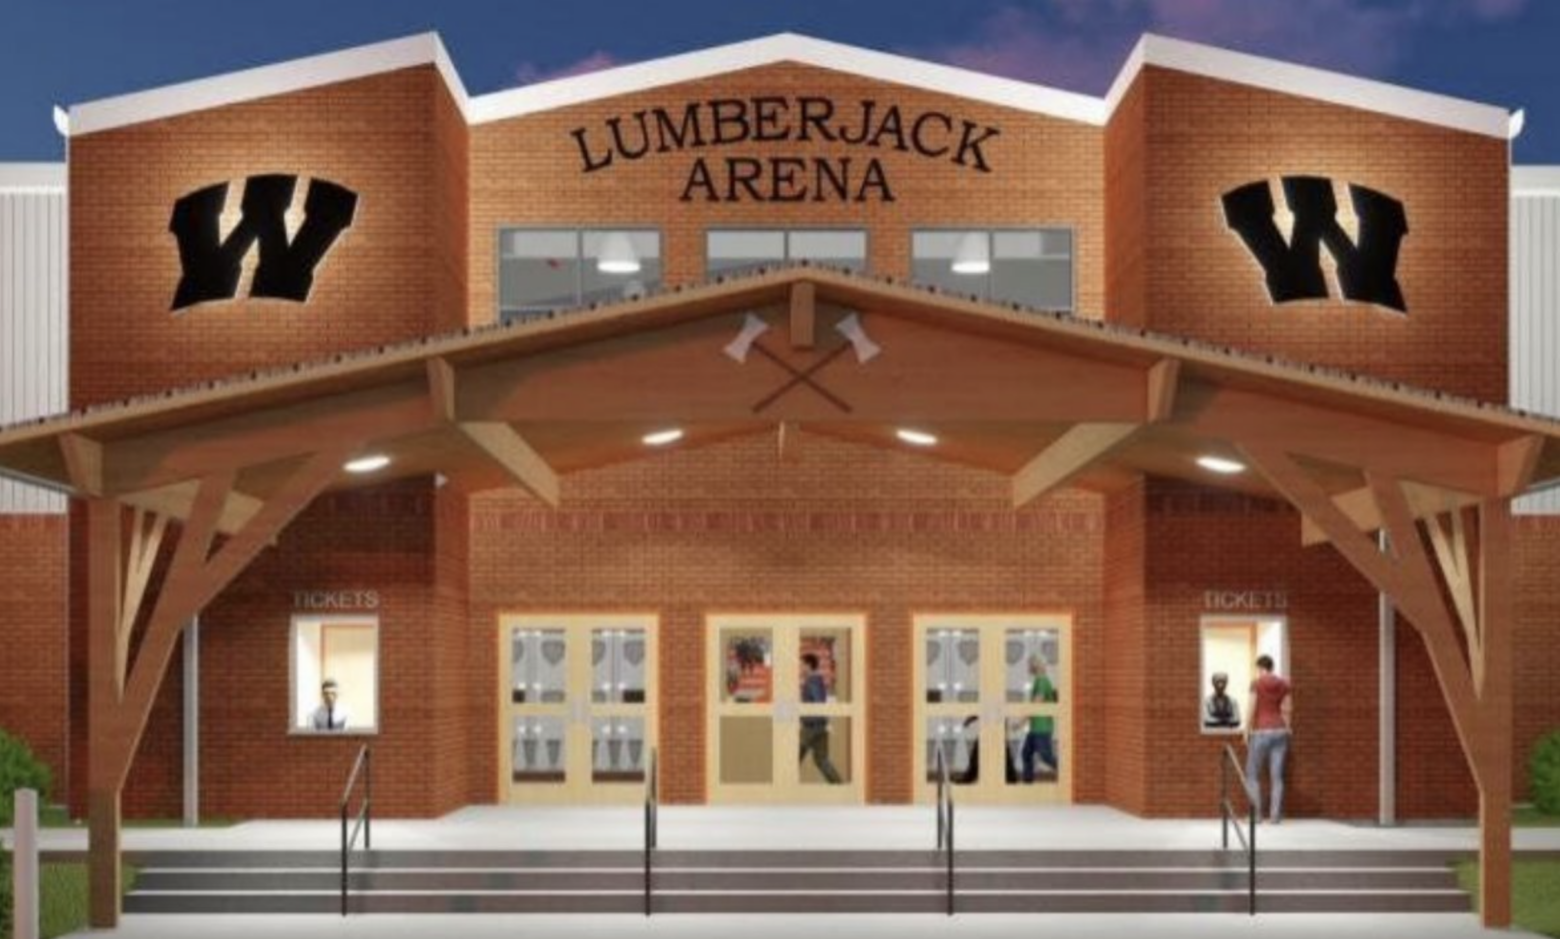 Construction approved to begin on new Lumberjack arena and elementary school